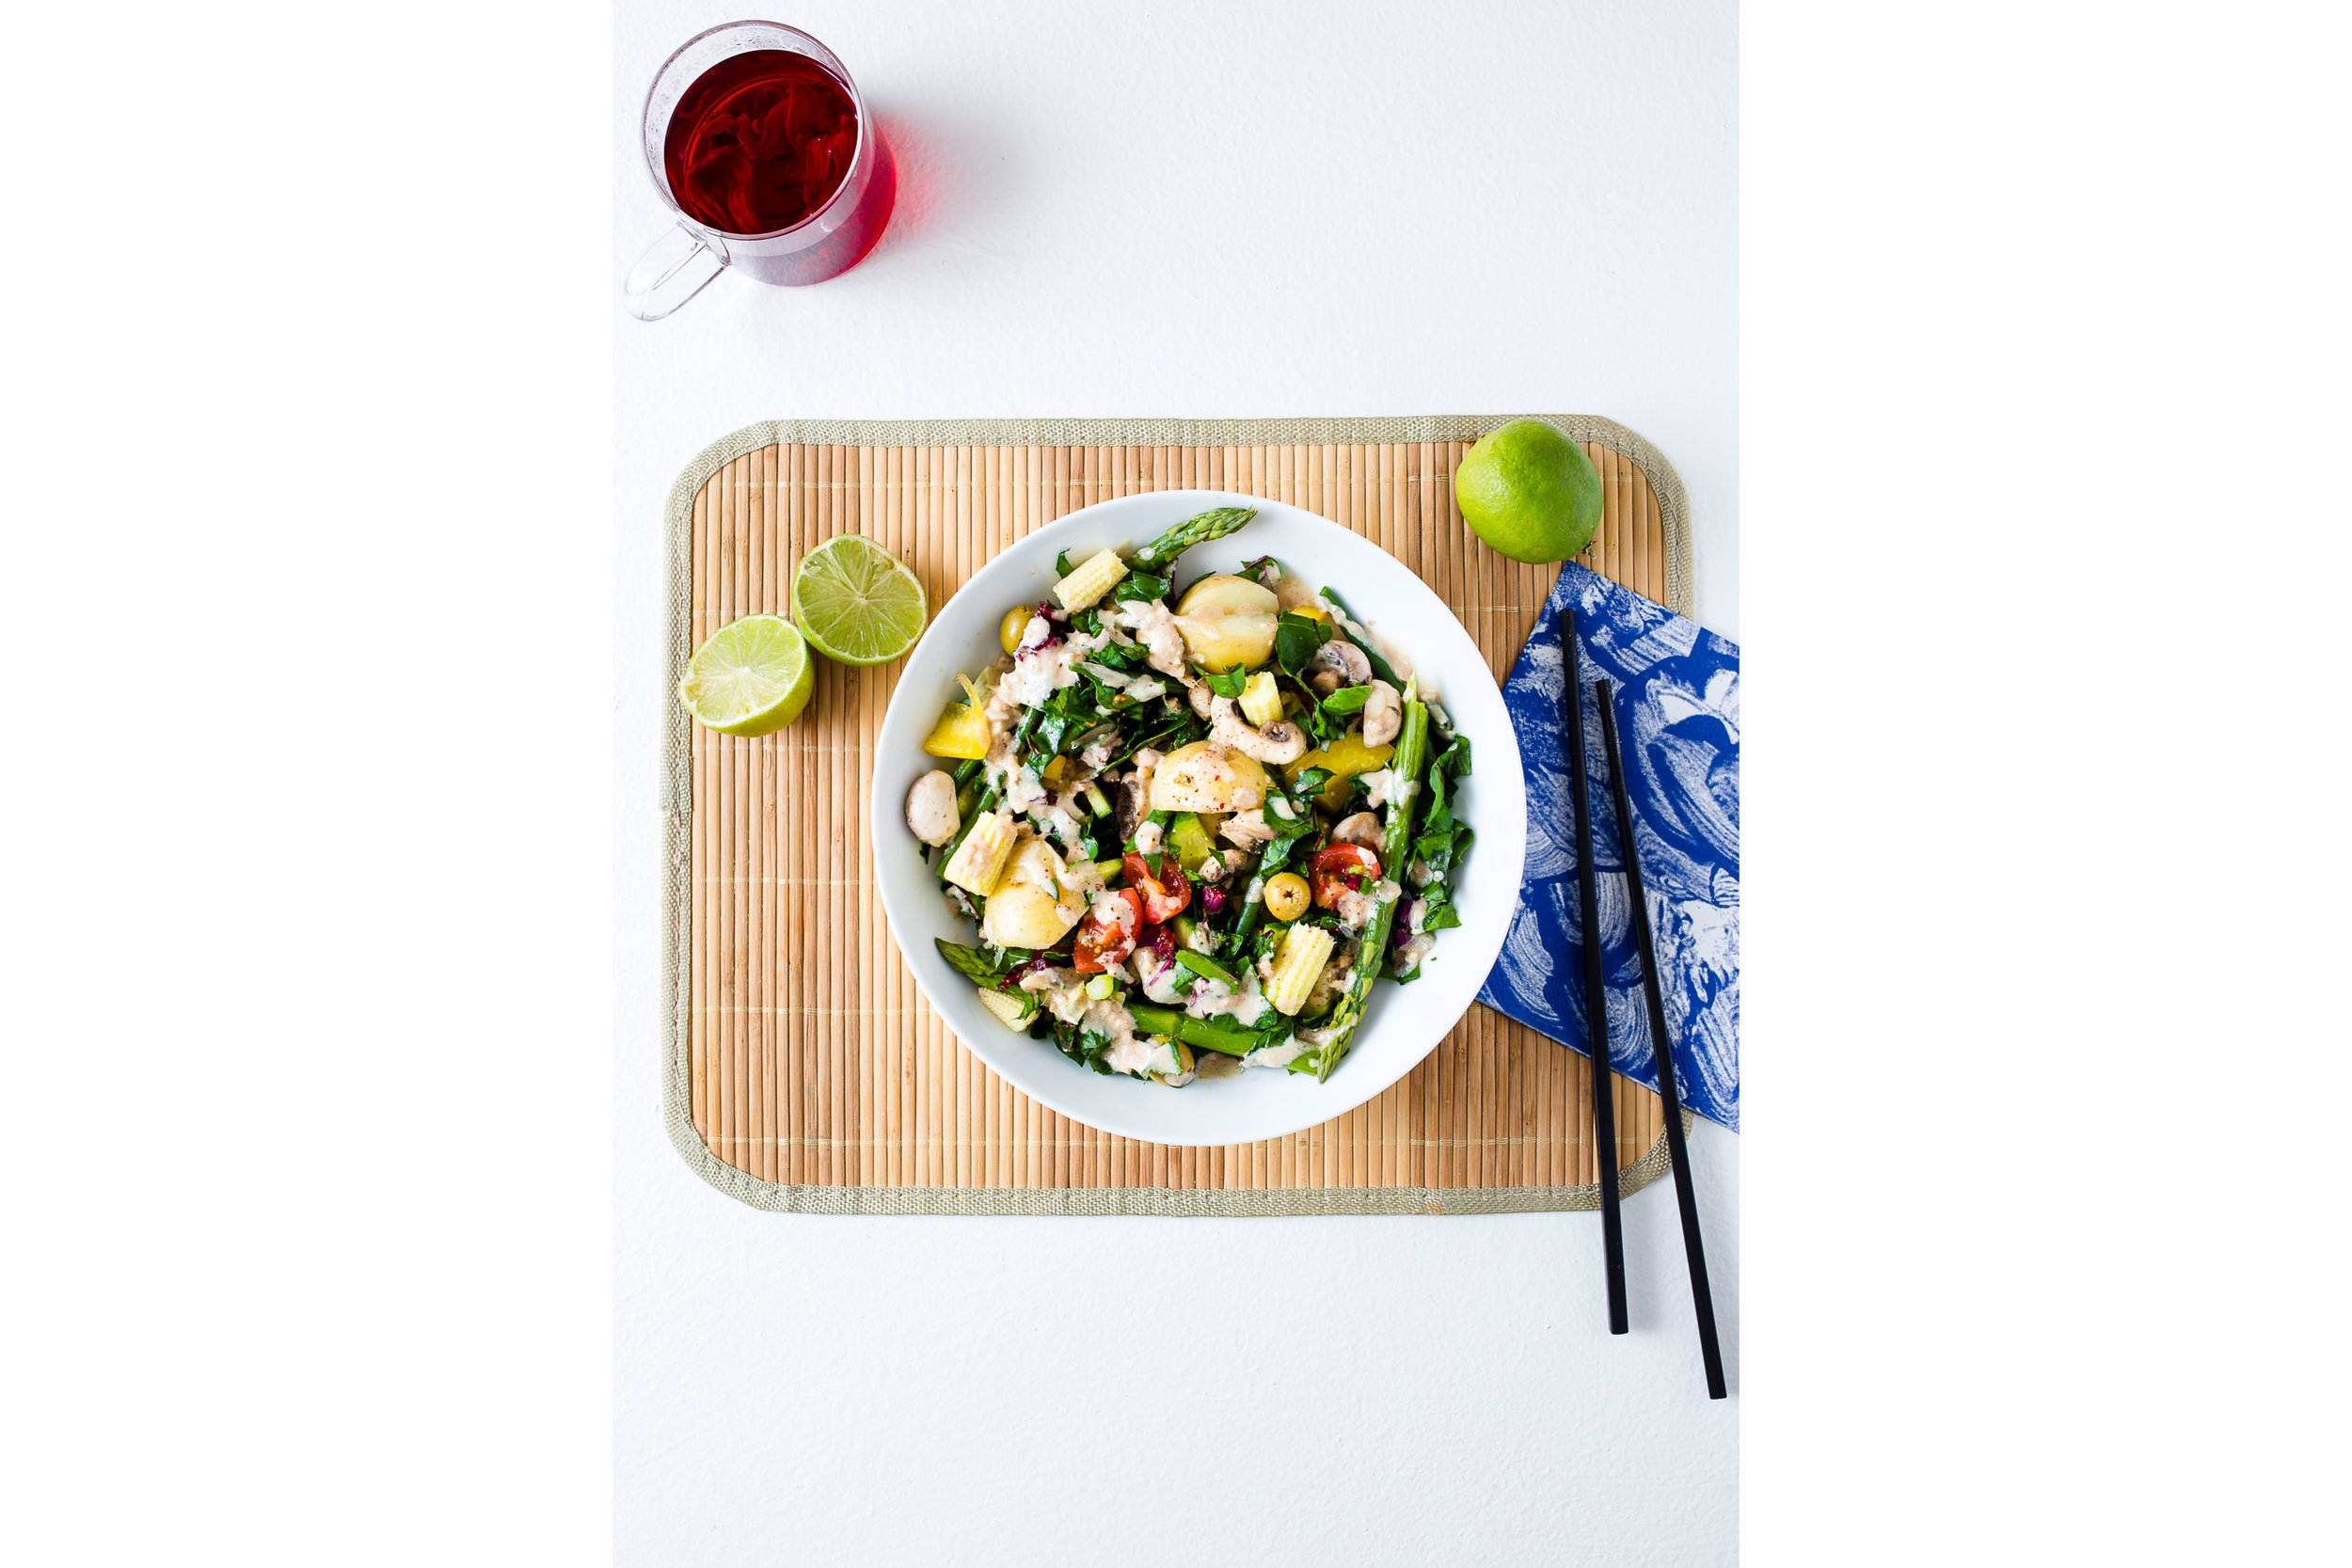 A bowl of warm Asian inspired salad with a glass of hibiscus tea www.realfamilyjourney.com